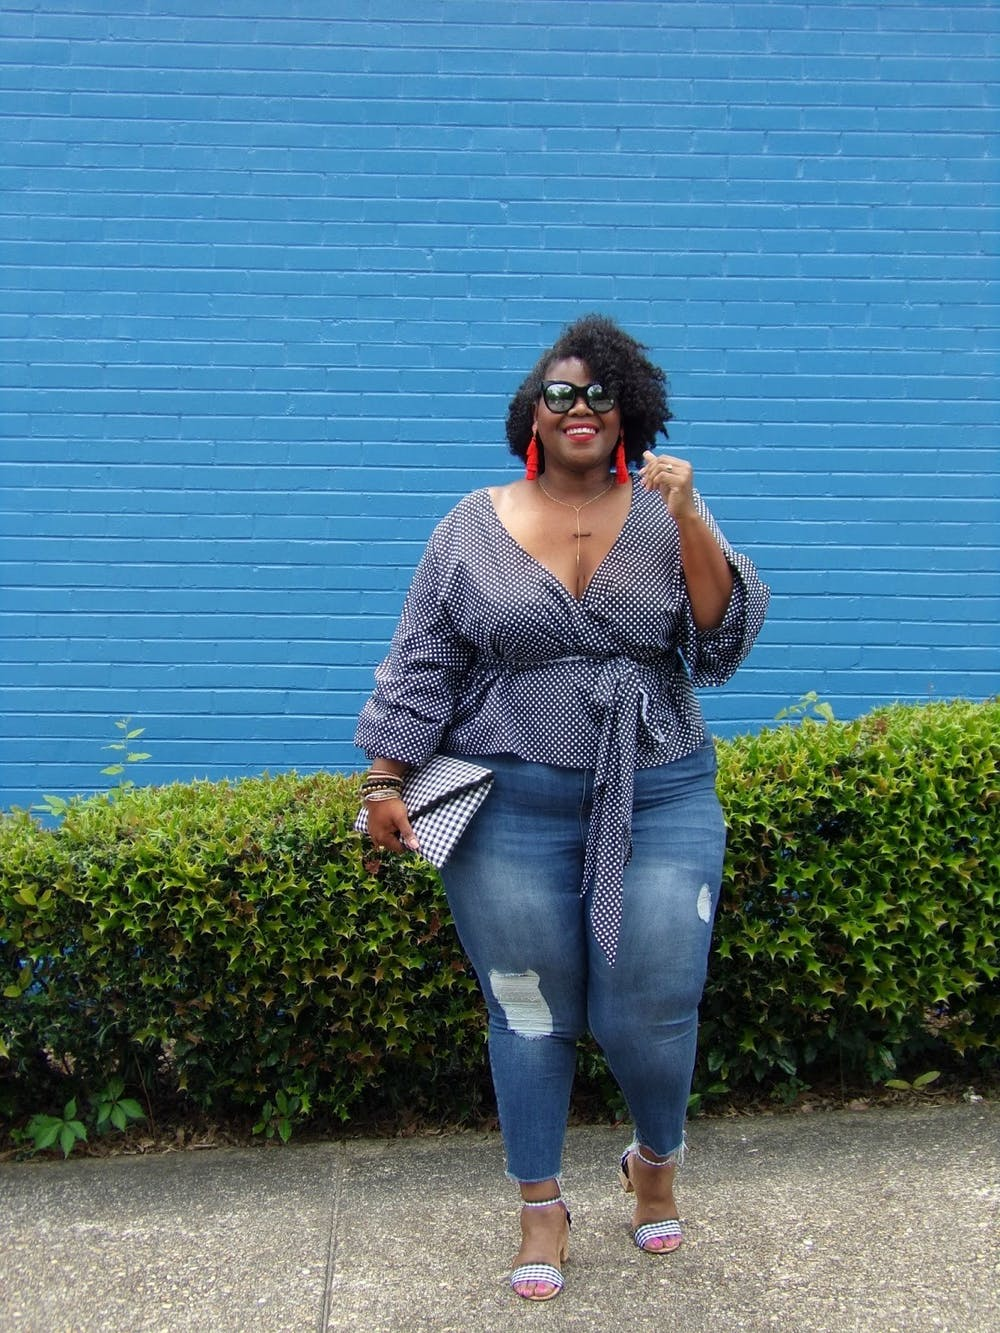 'Blessed' size: Alumna, blogger shares her fashion blog knowledge